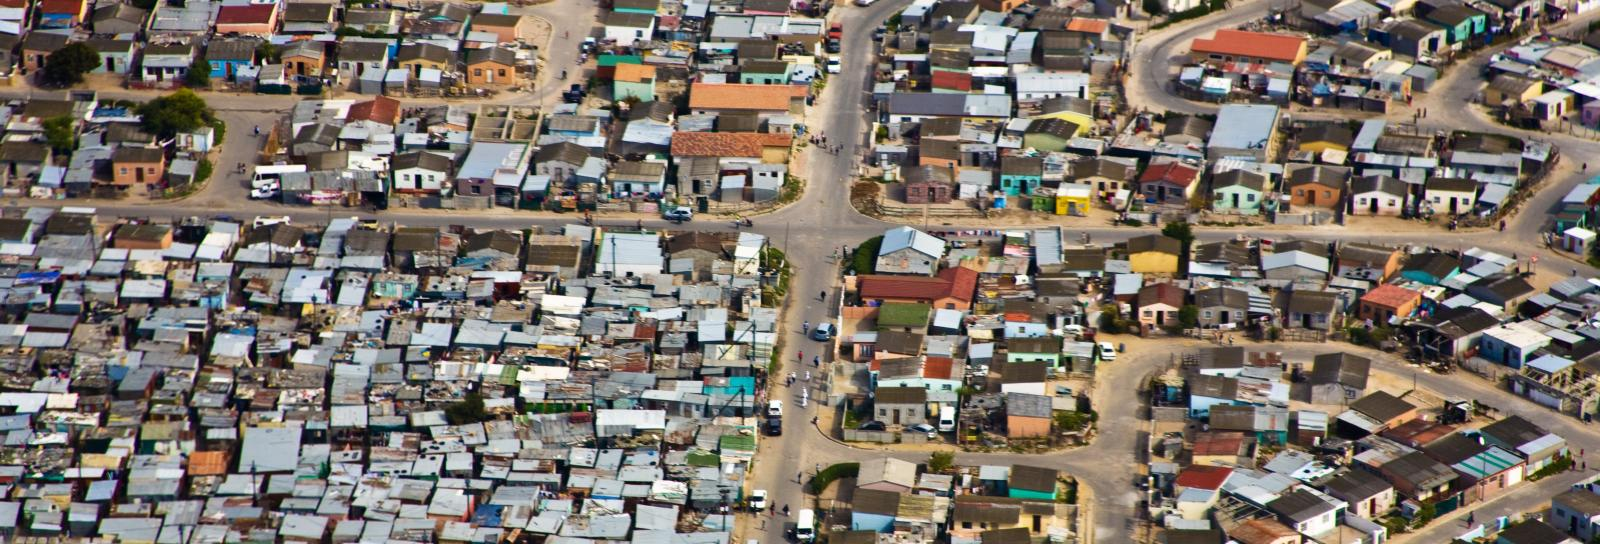 aerial view of informal settlements in Cape Town, South Africa